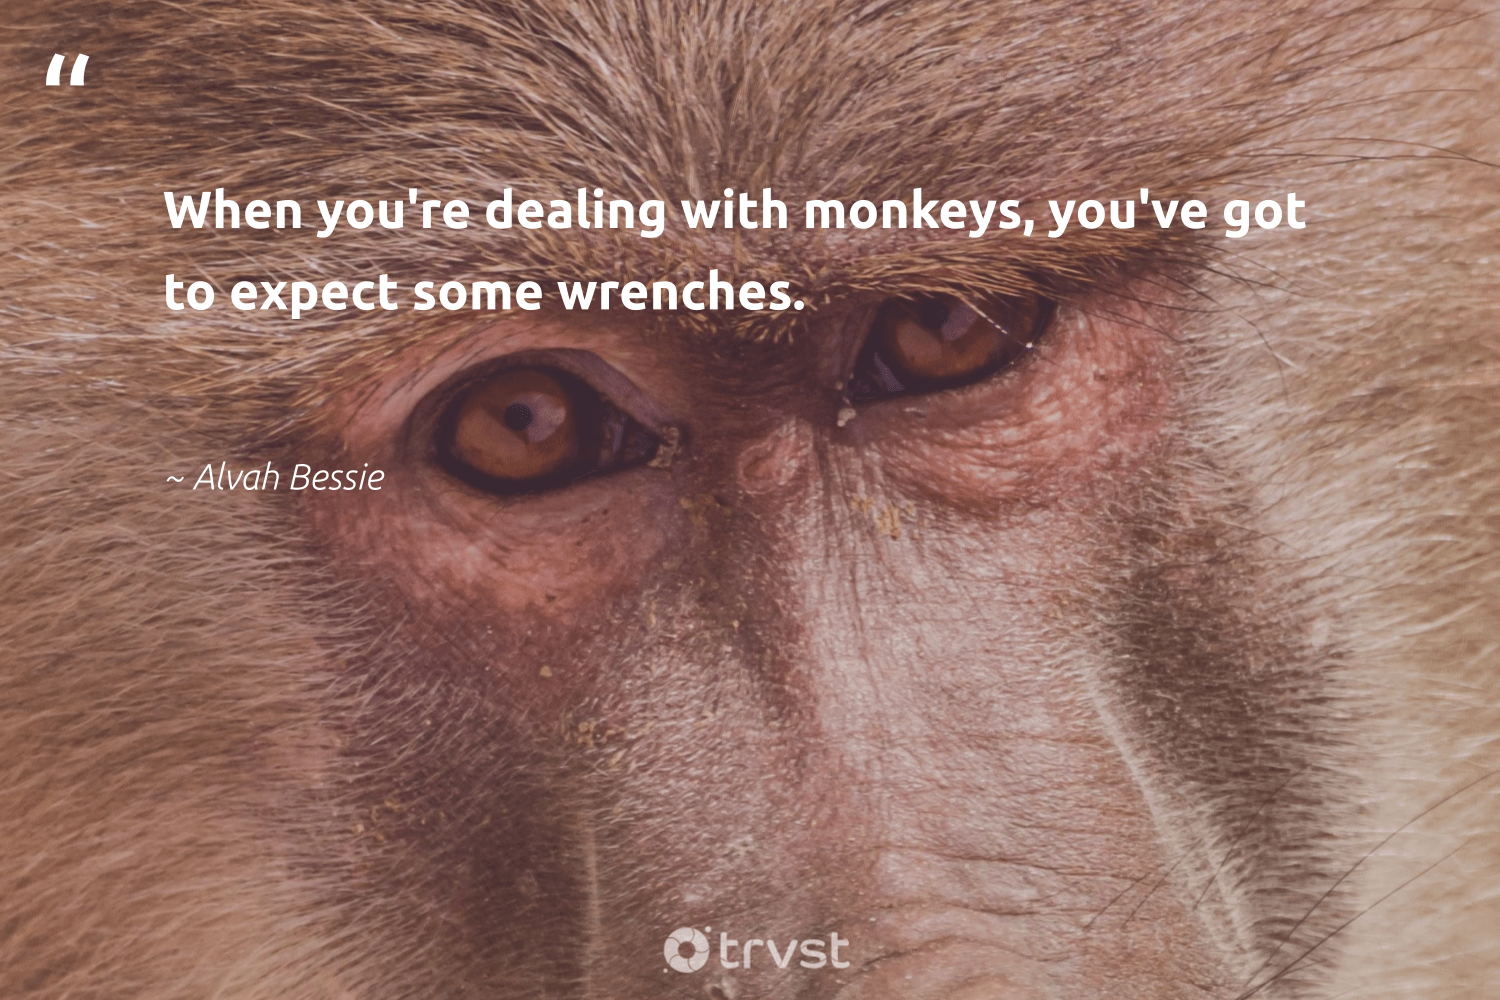 """When you're dealing with monkeys, you've got to expect some wrenches.""  - Alvah Bessie #trvst #quotes #monkeys #conservation #planetearthfirst #wild #bethechange #sustainability #ecoconscious #perfectnature #impact #wildlifeprotection"